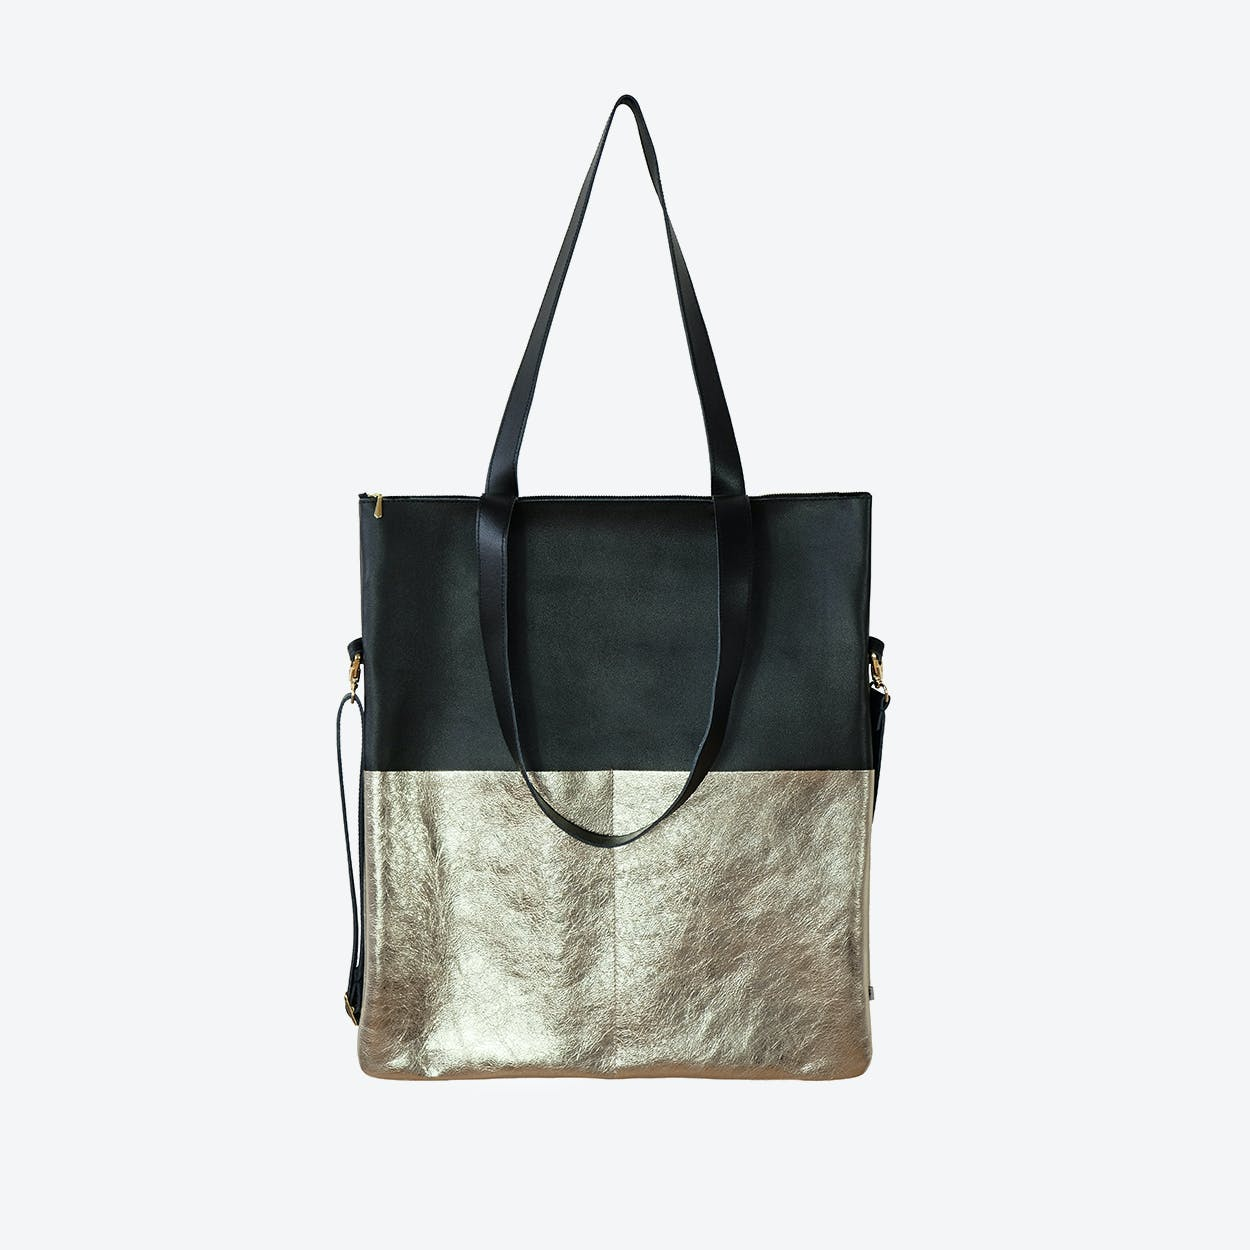 MARA Shoulder Bag in Black / Gold